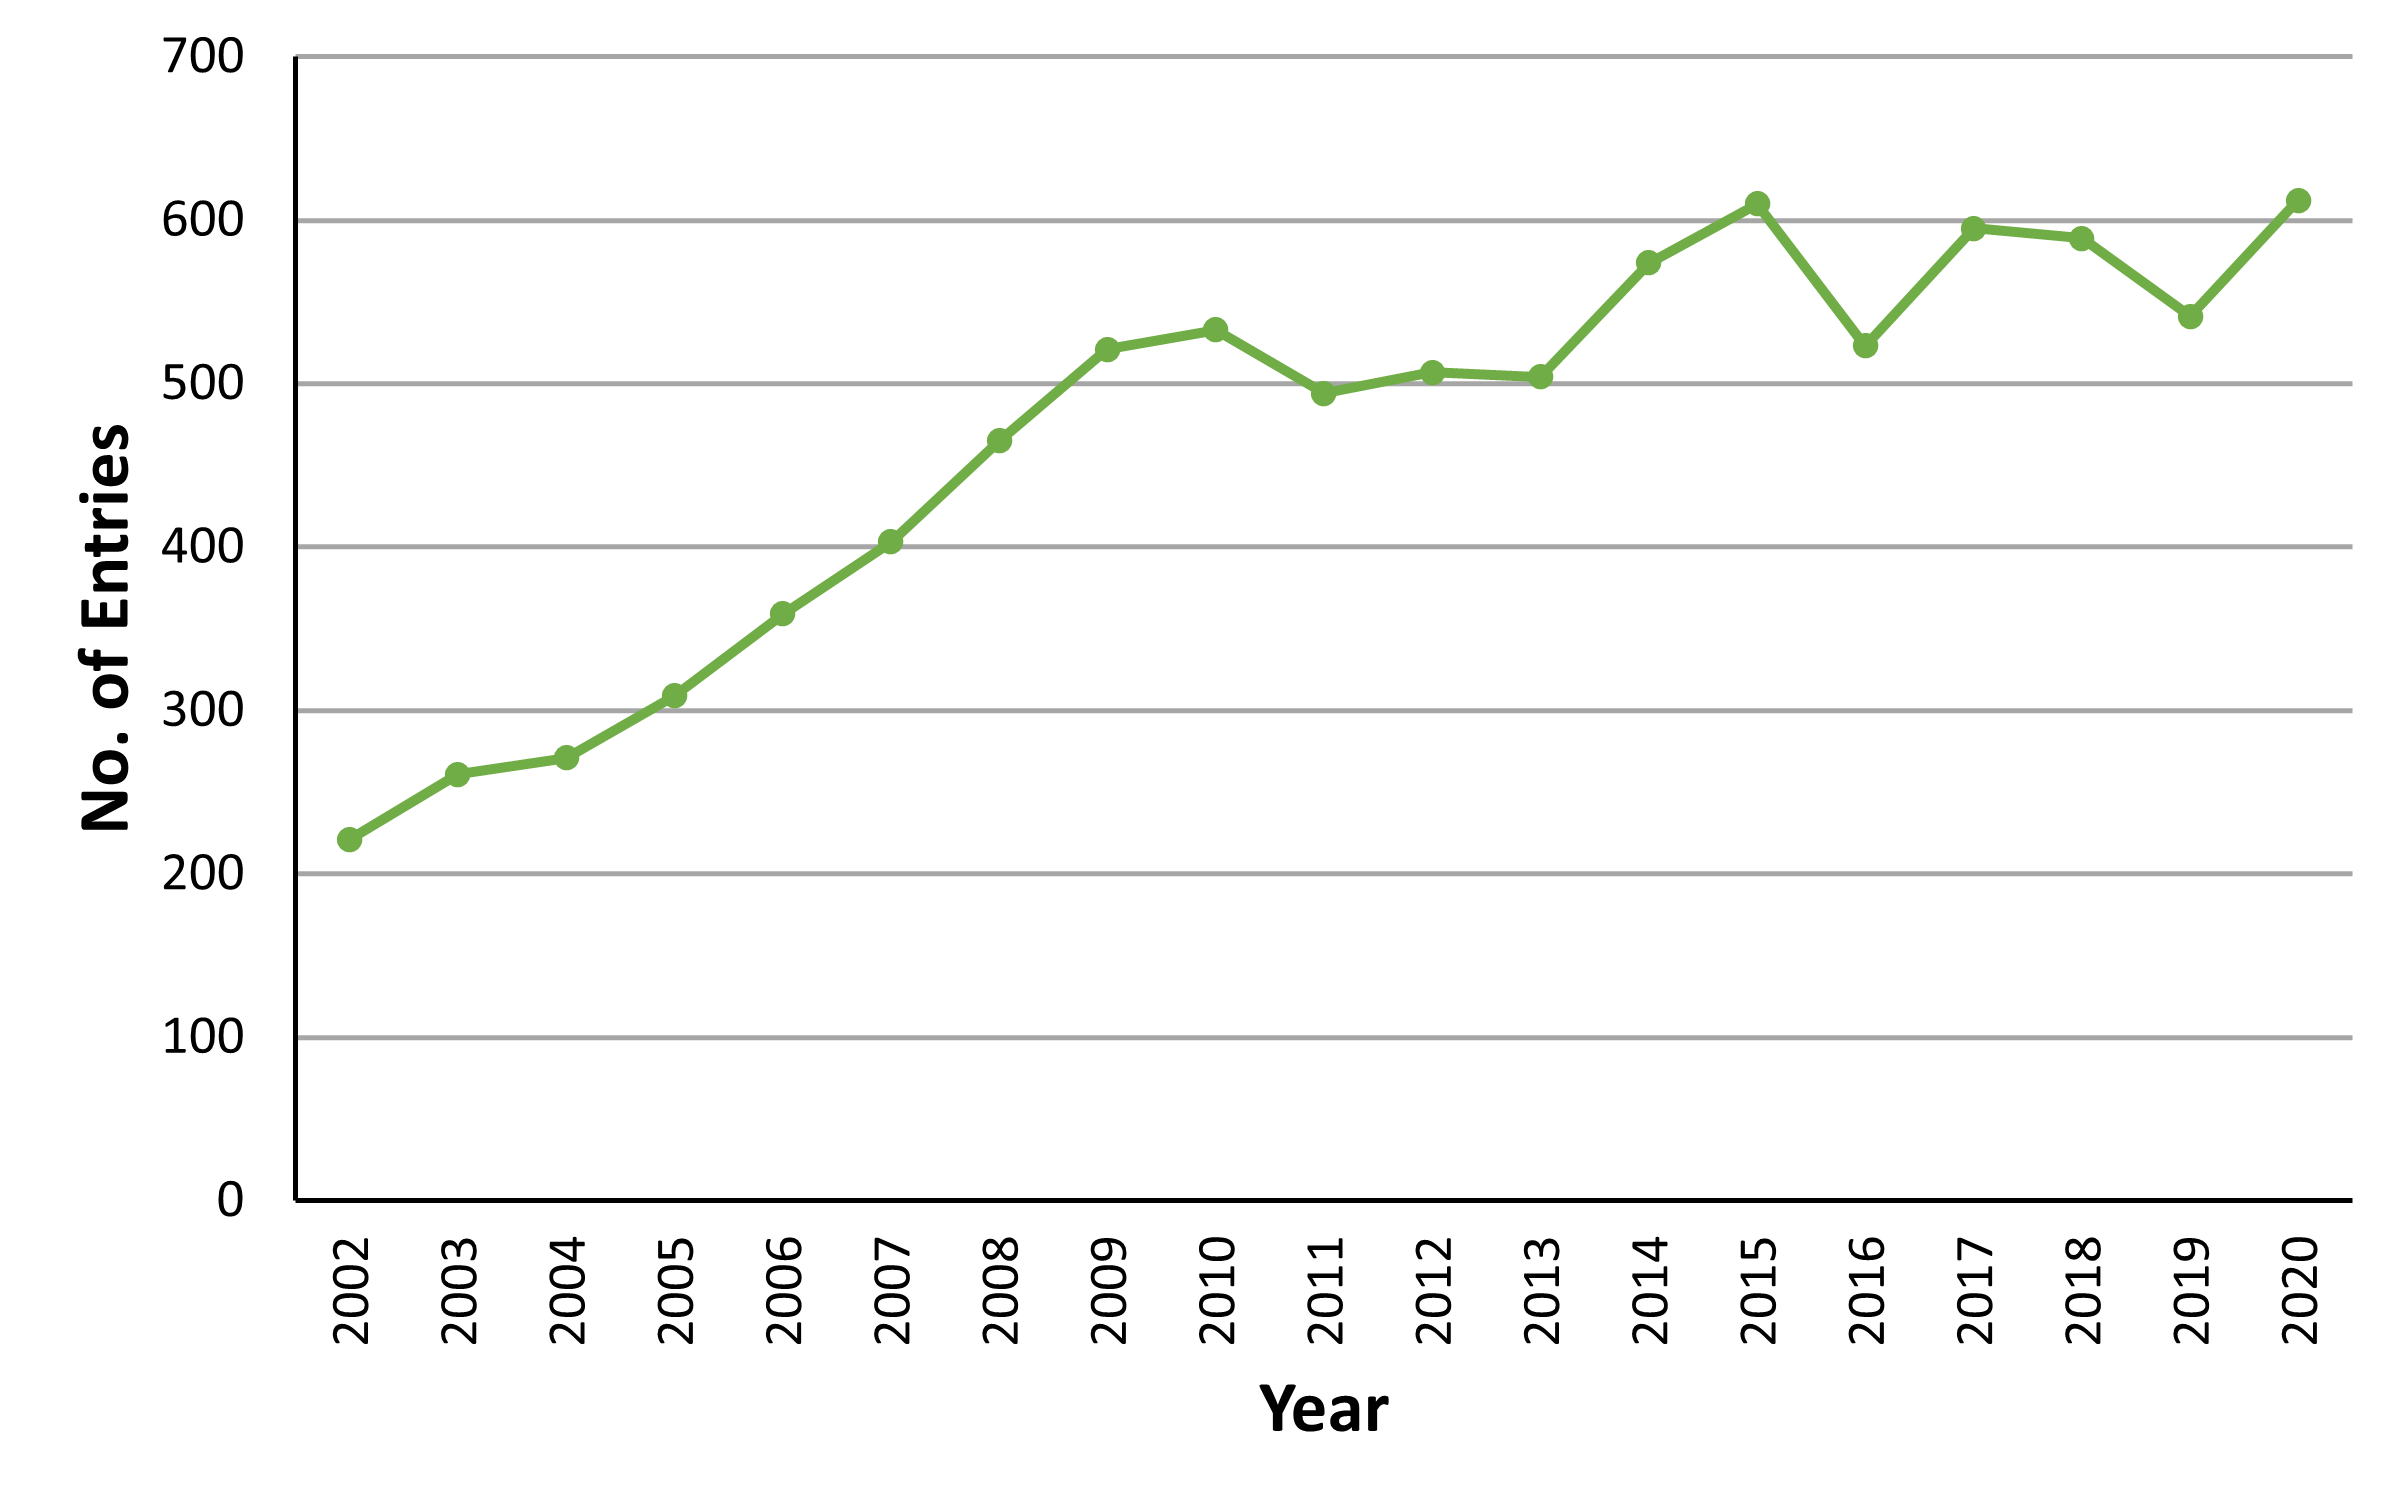 Chart A.3.i. Number of entries in Biological & Ecological Category of the Young Scientists & Technology Exhibition